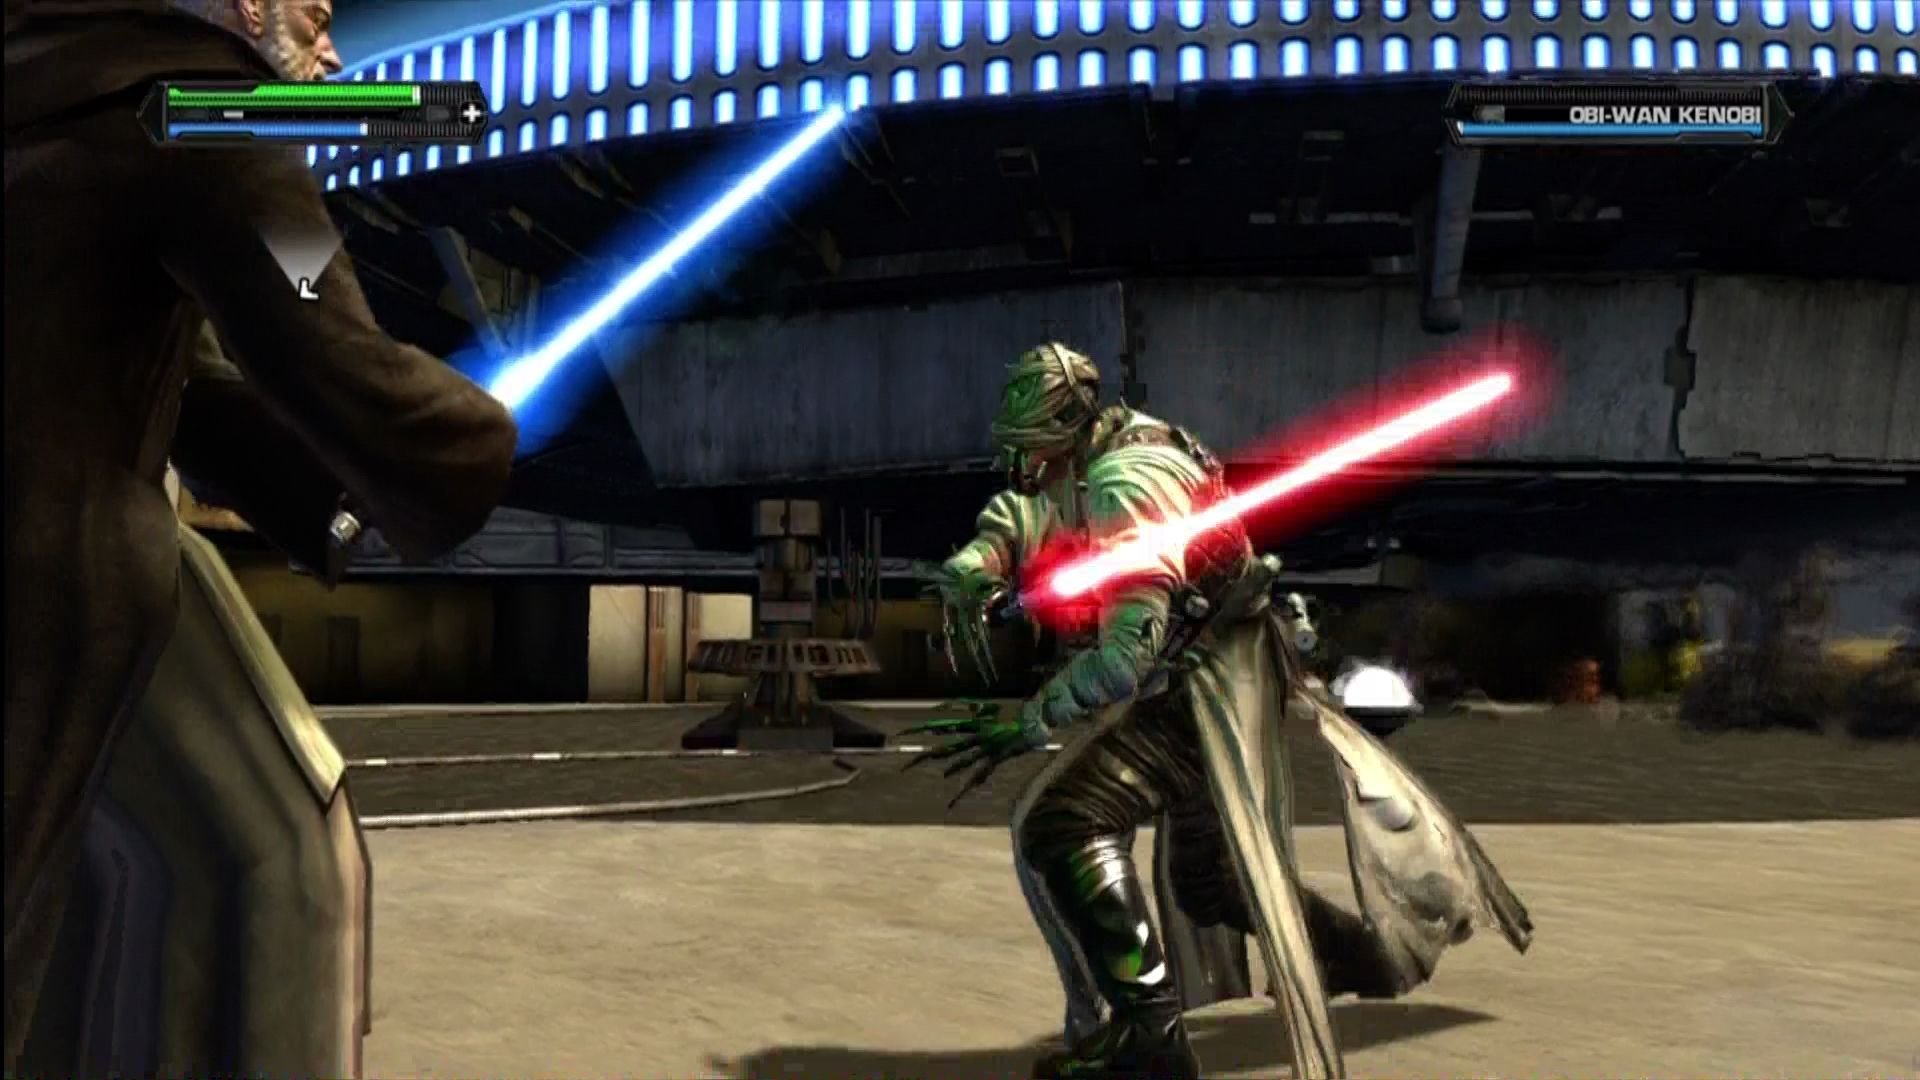 Star Wars The Force Unleashed Ultimate Sith Edition Screenshots For Xbox 360 Mobygames